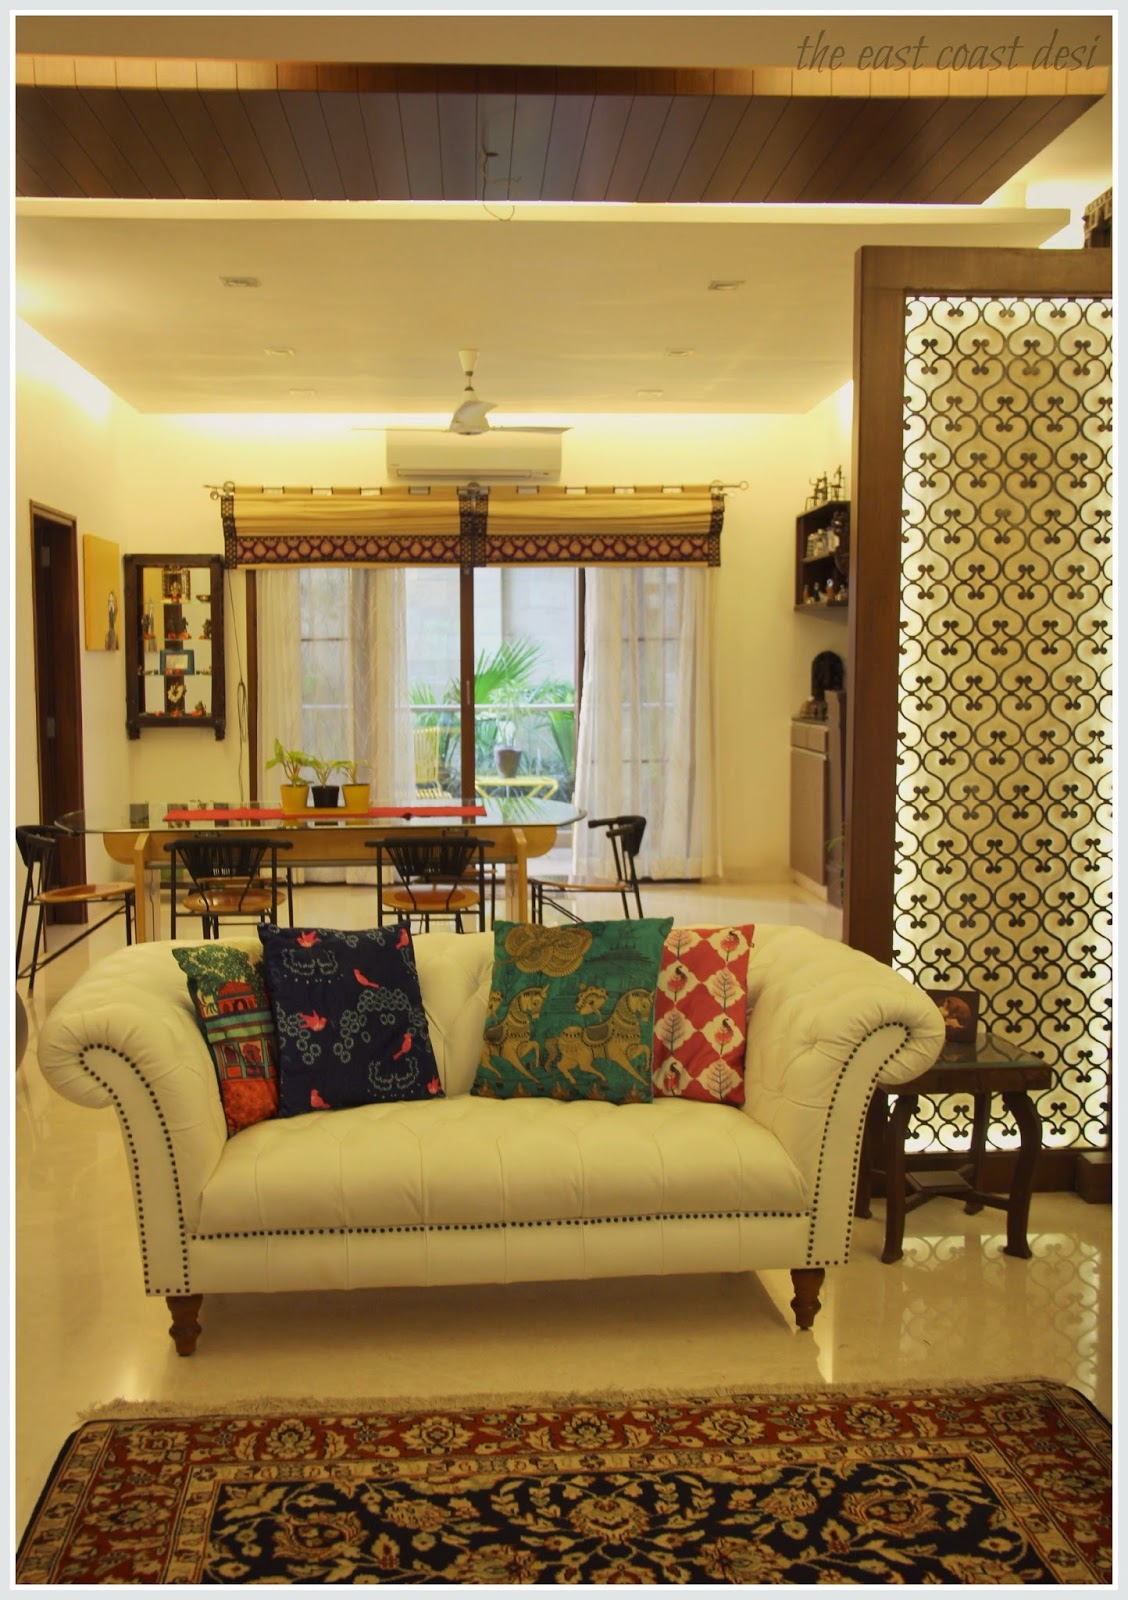 The east coast desi masterful mixing home tour for Interior designs for bedrooms indian style